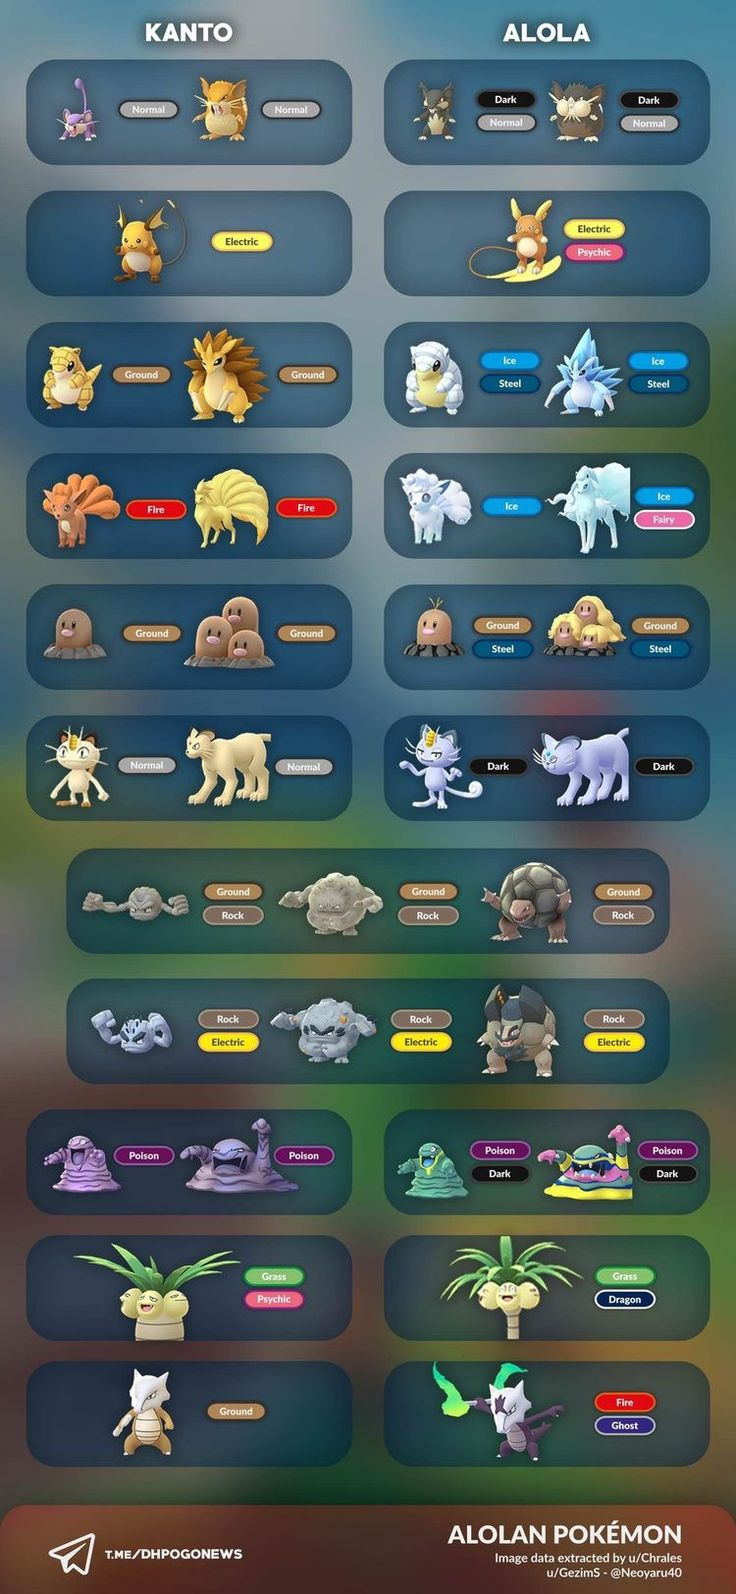 Alolan Pokémon Pokemon pokedex, Pokemon, Pokemon facts